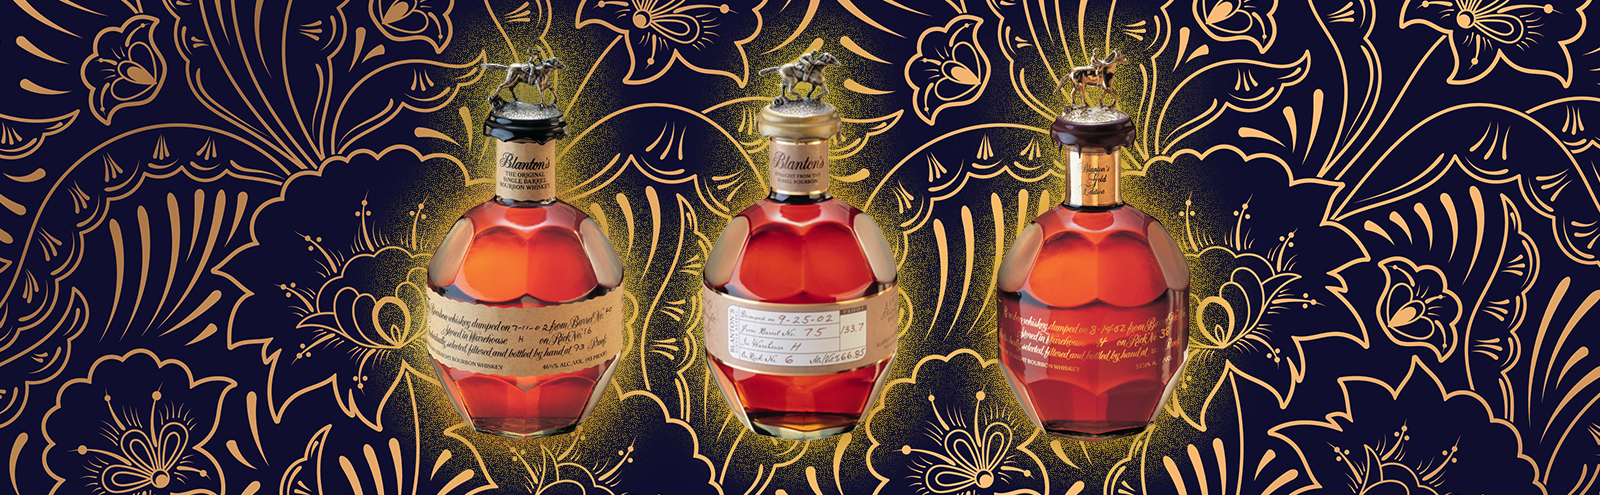 Blanton's Three Bourbon Whiskey Expressions — Explained, Rated, And Ranked